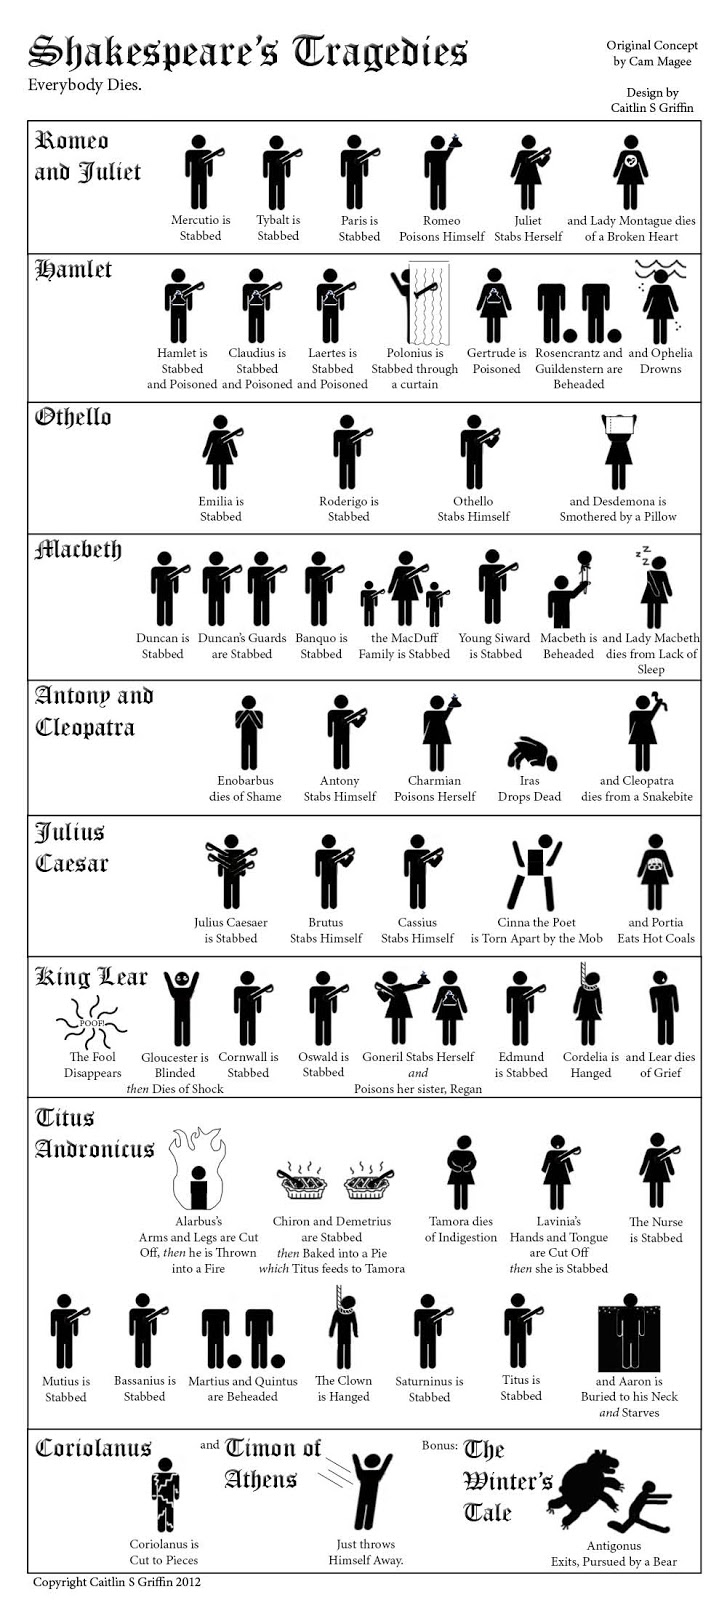 Shakespearean tragedy tragedies stick figures all dead everyone dies